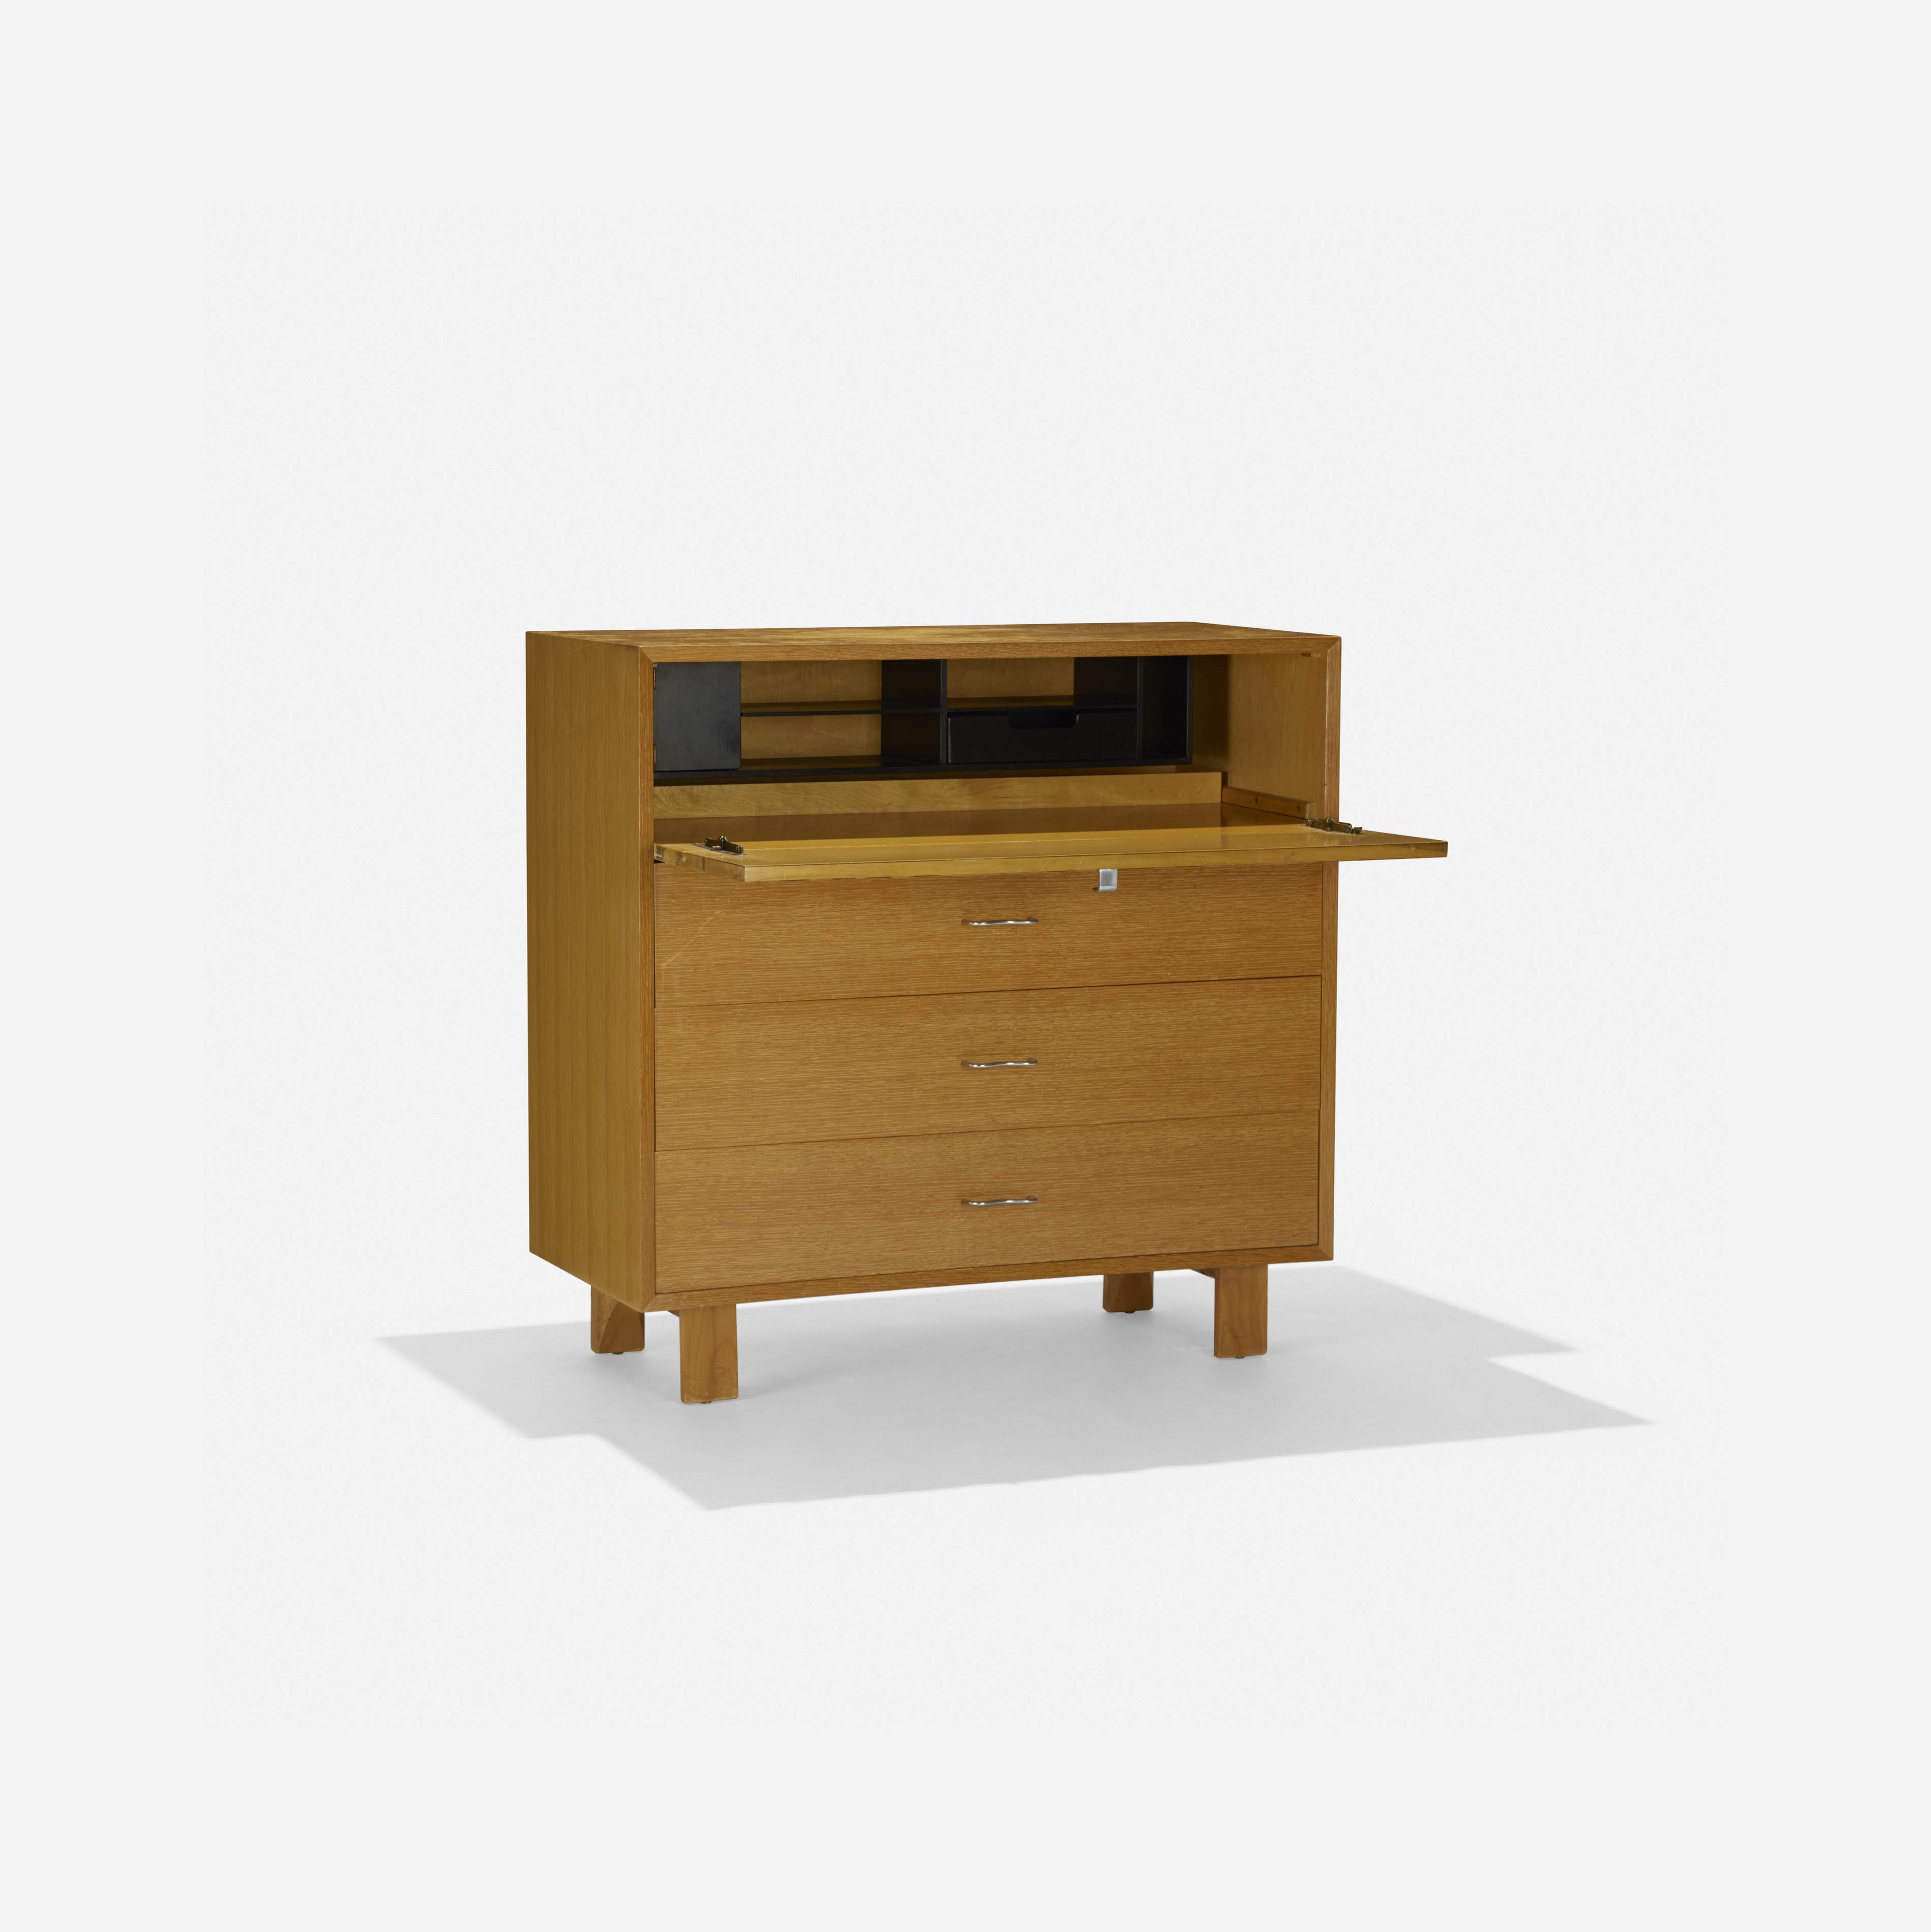 cabinet, model 4623 from the Basic Cabinet series - George Nelson & Associates